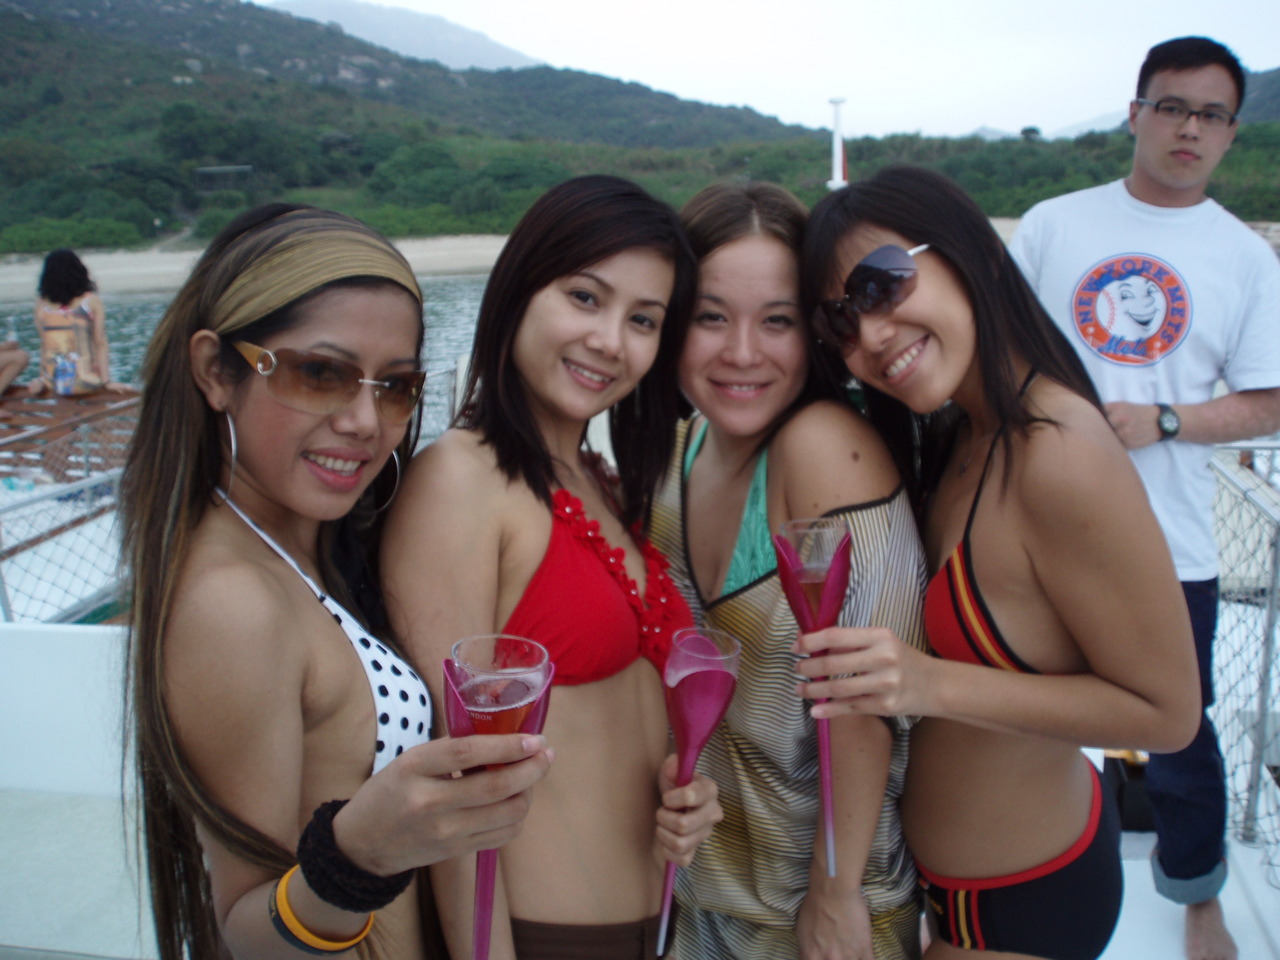 Thailand Babes on the beach presents an article for,Youths keen on learning safe sex